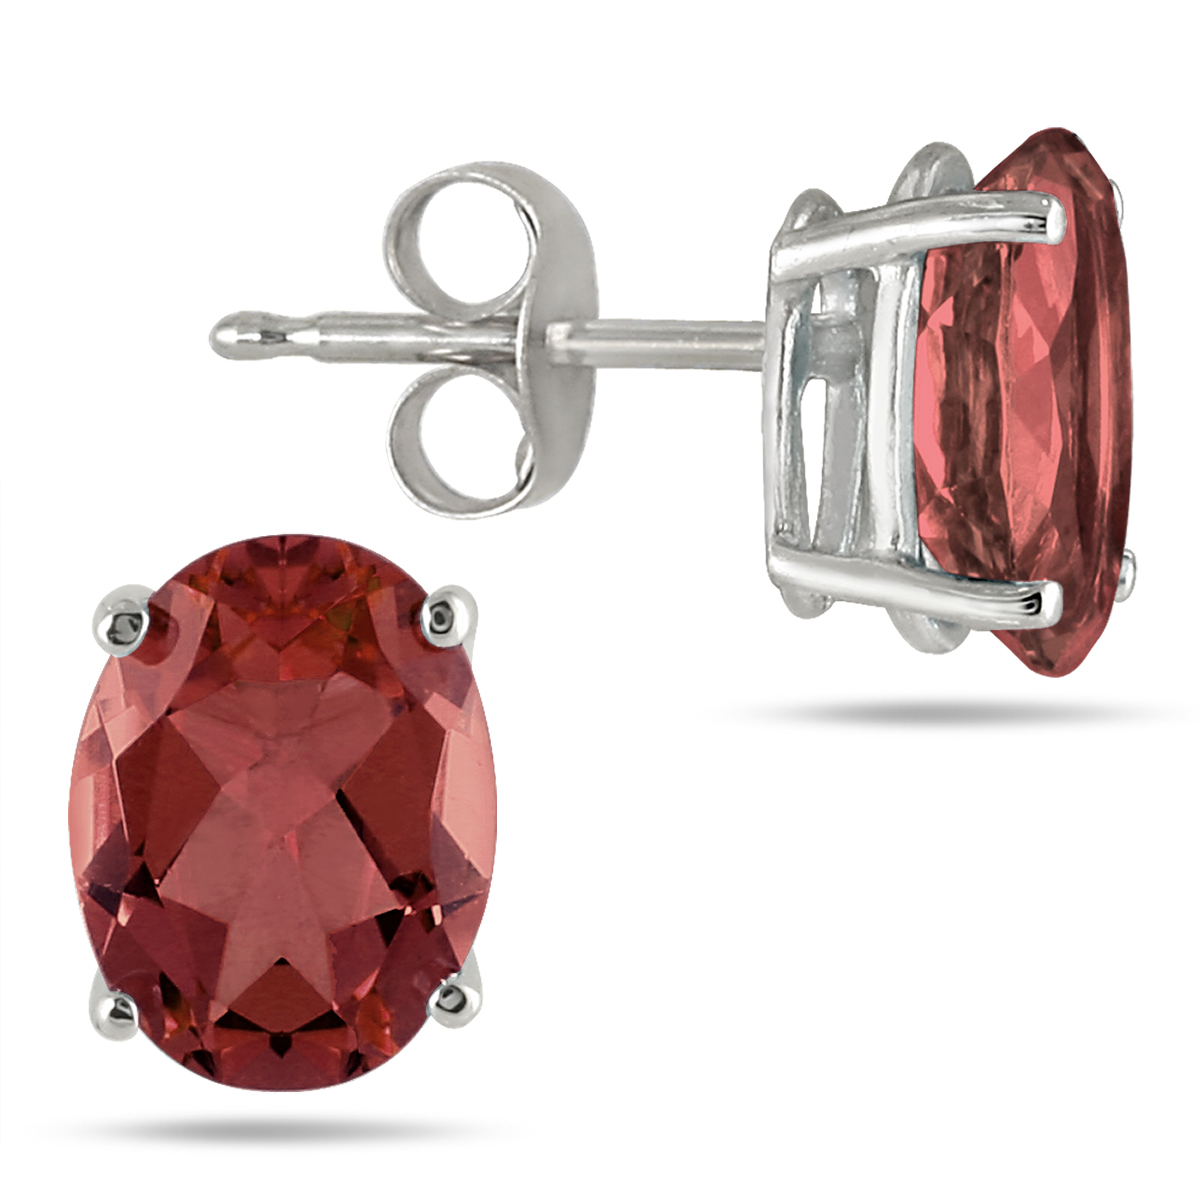 szul.com All-Natural Genuine 8x6 mm, Oval Garnet earrings set in 14k White Gold at Sears.com